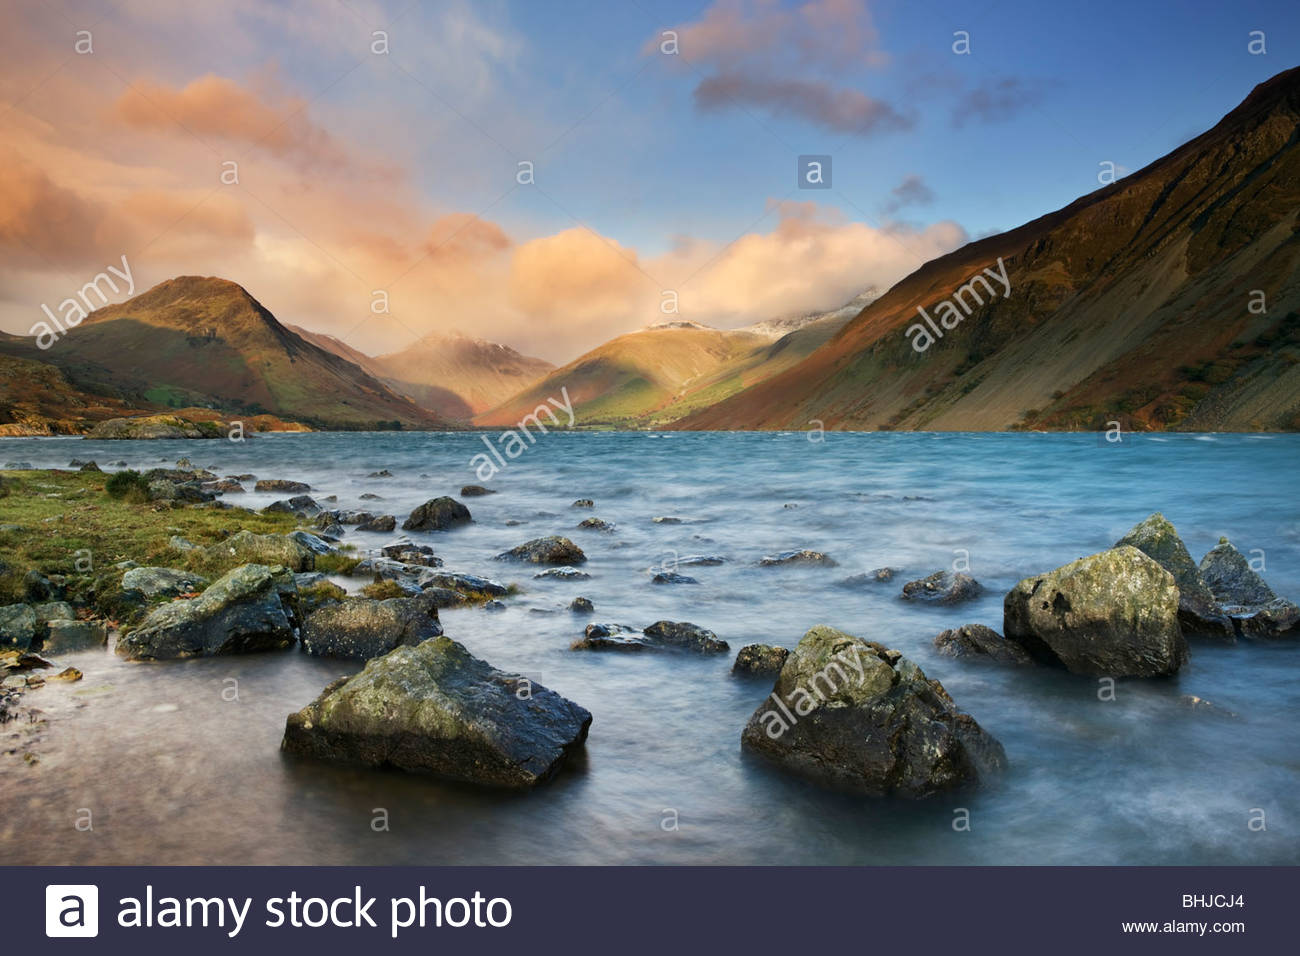 El agua residual, Lake District National Park, Cumbria, Inglaterra, Reino Unido. Imagen De Stock